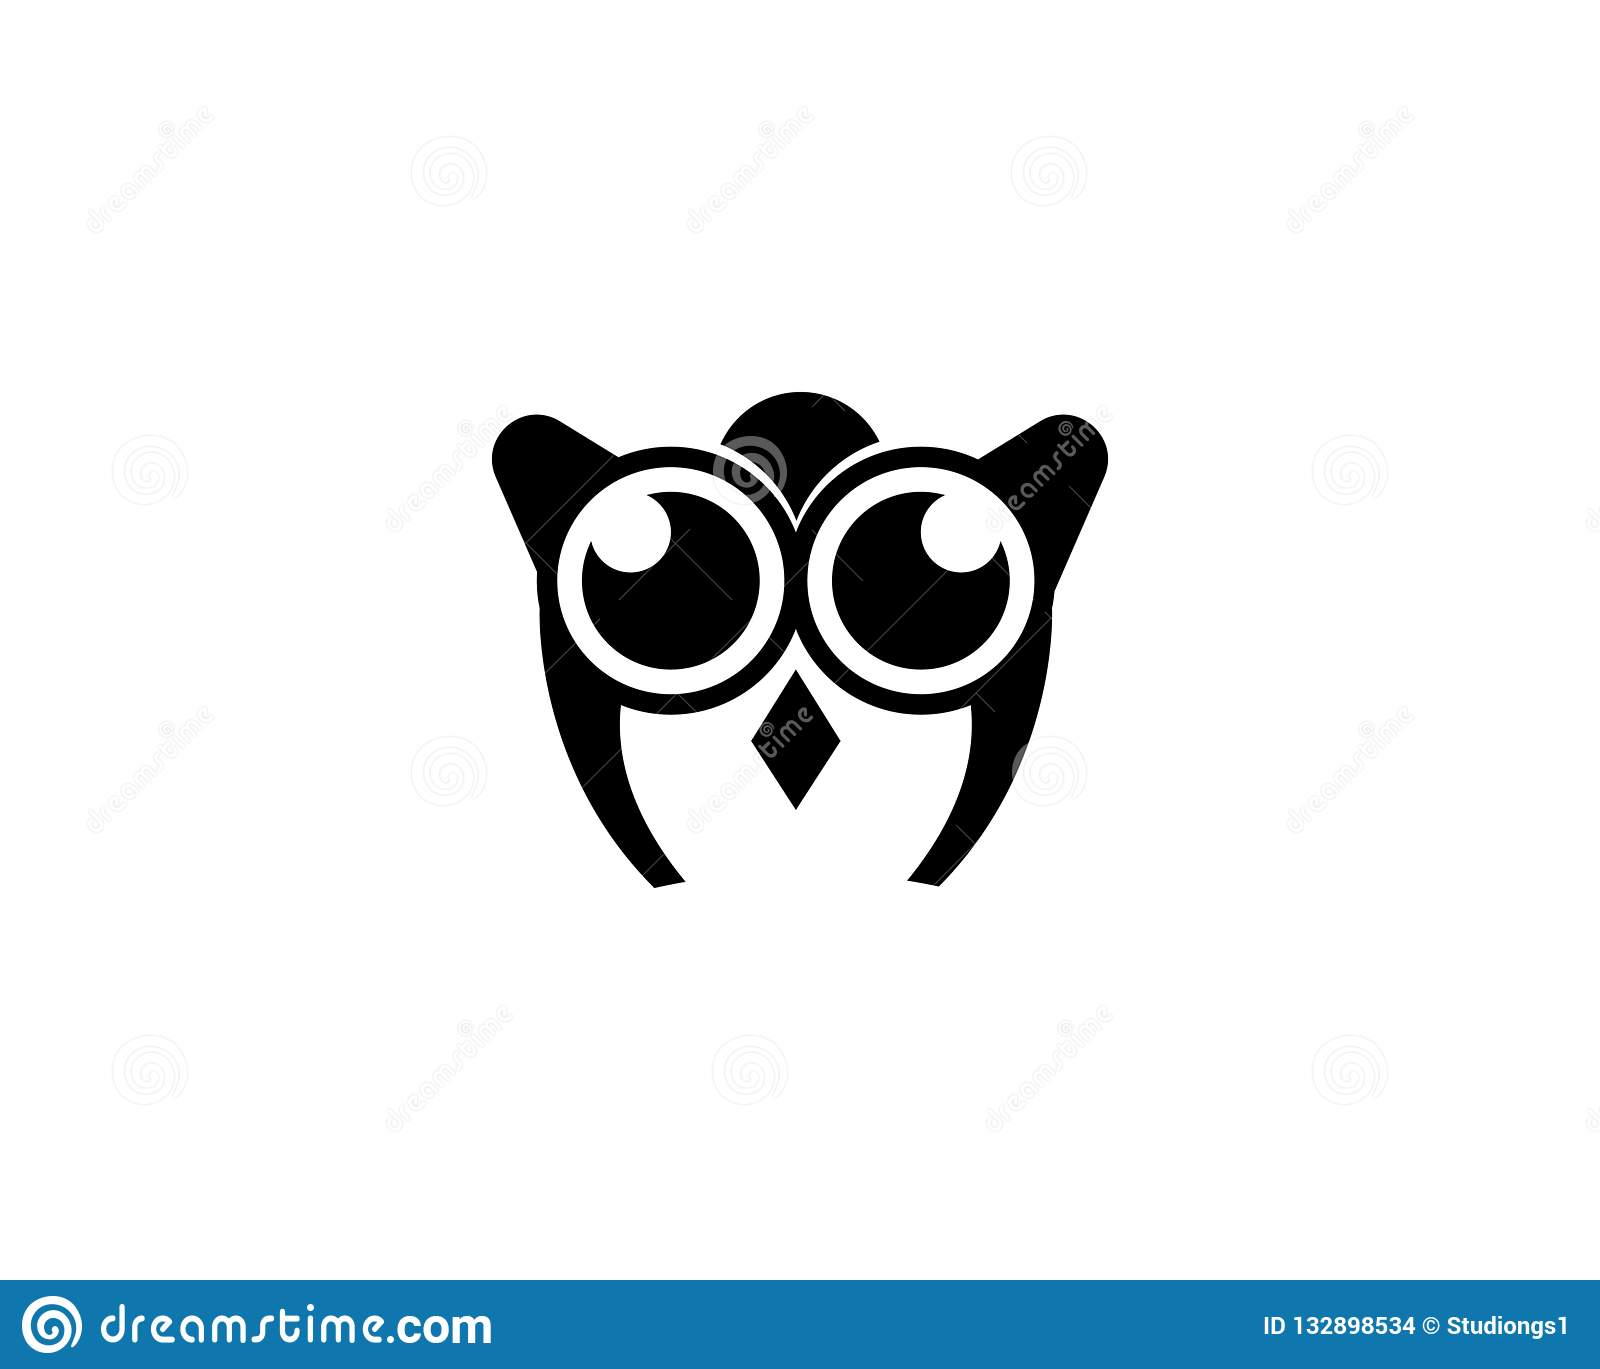 Image of: Nocturnal Media Owl Logo And Symbol Template Dribbble Owl Logo And Symbol Template Stock Photo Image Of Template